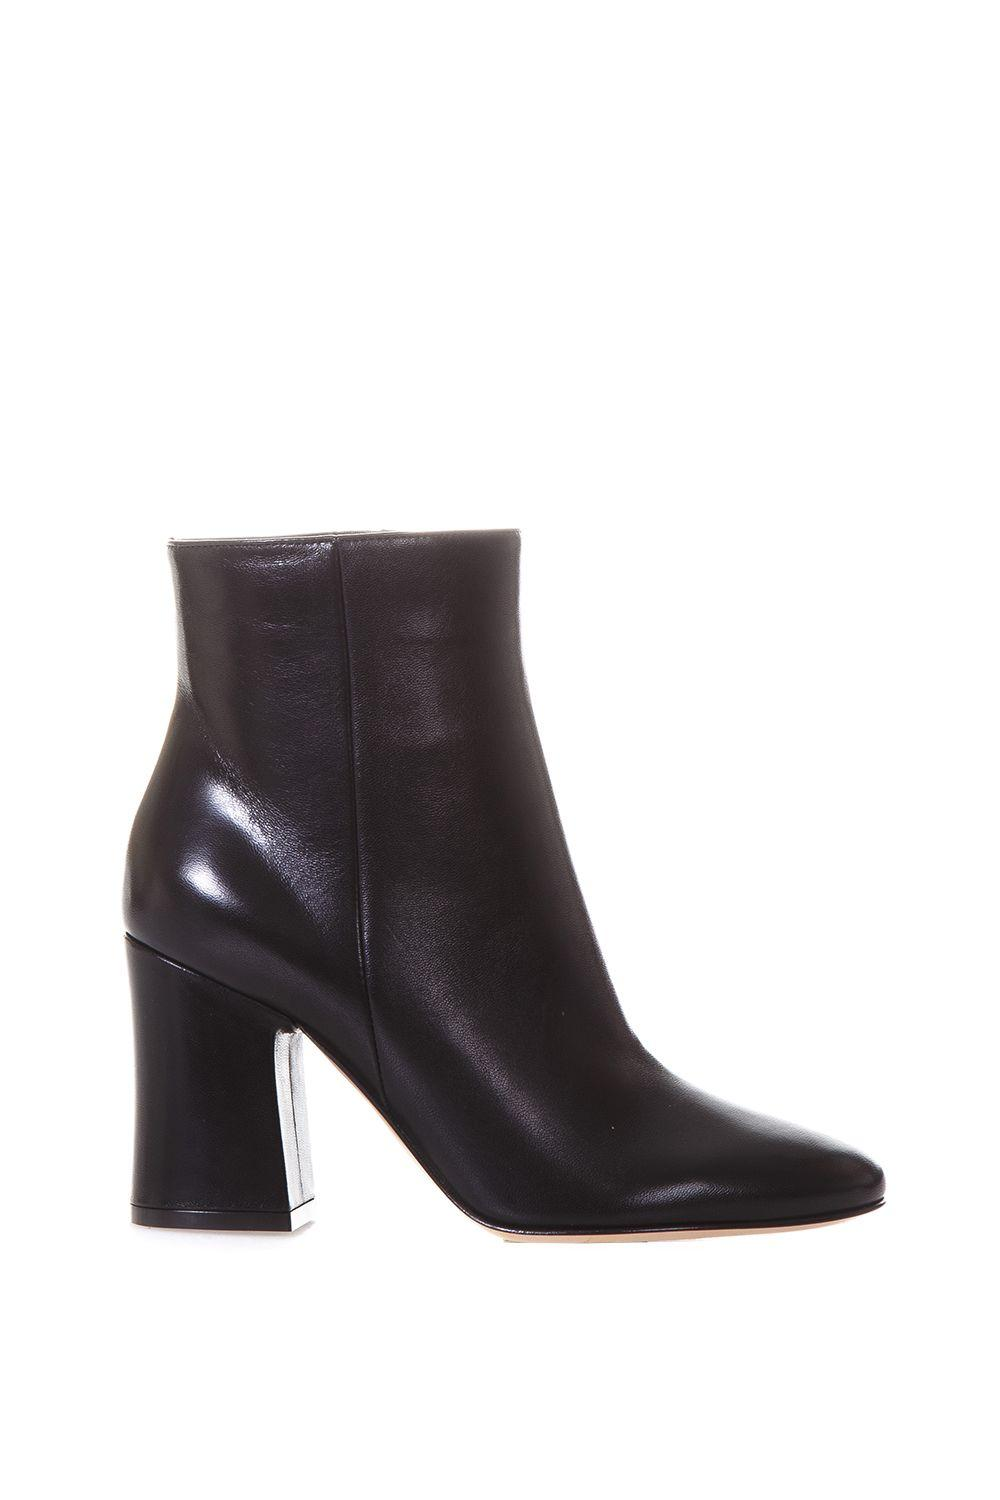 Gianvito Rossi Daryl Leather Boots In Black